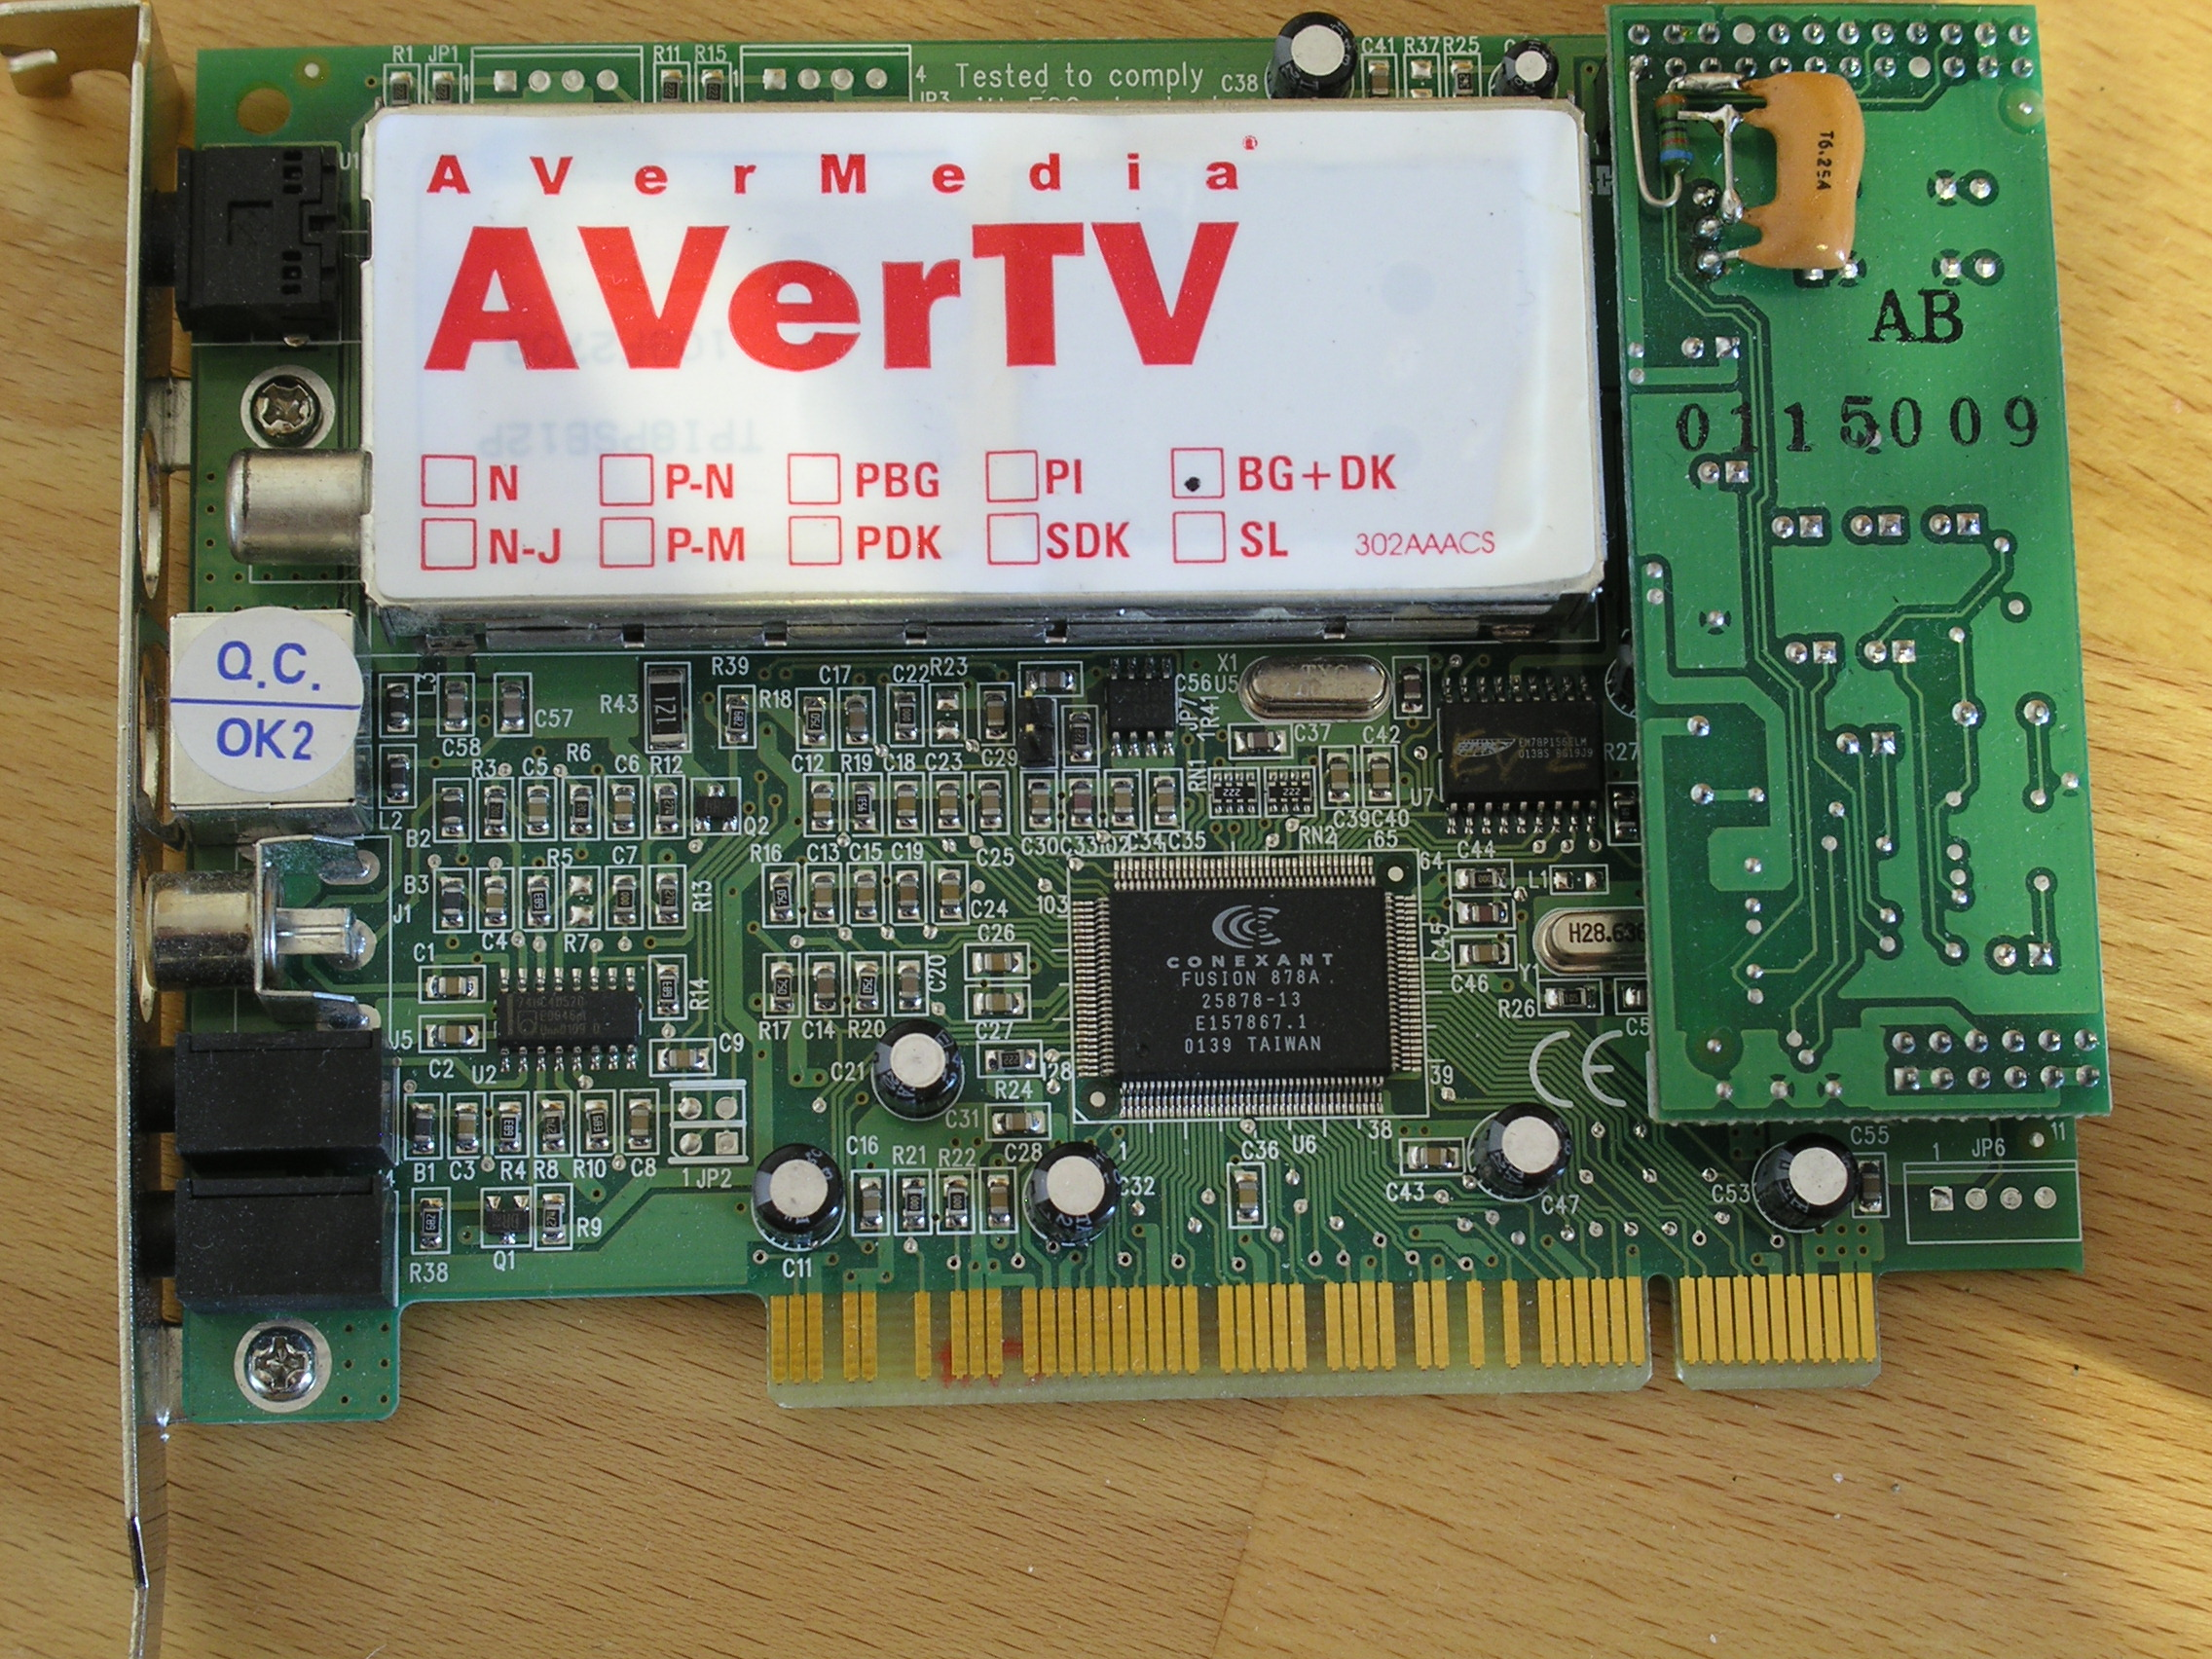 AVERMEDIA AVERTV WINDOWS 8 DRIVER